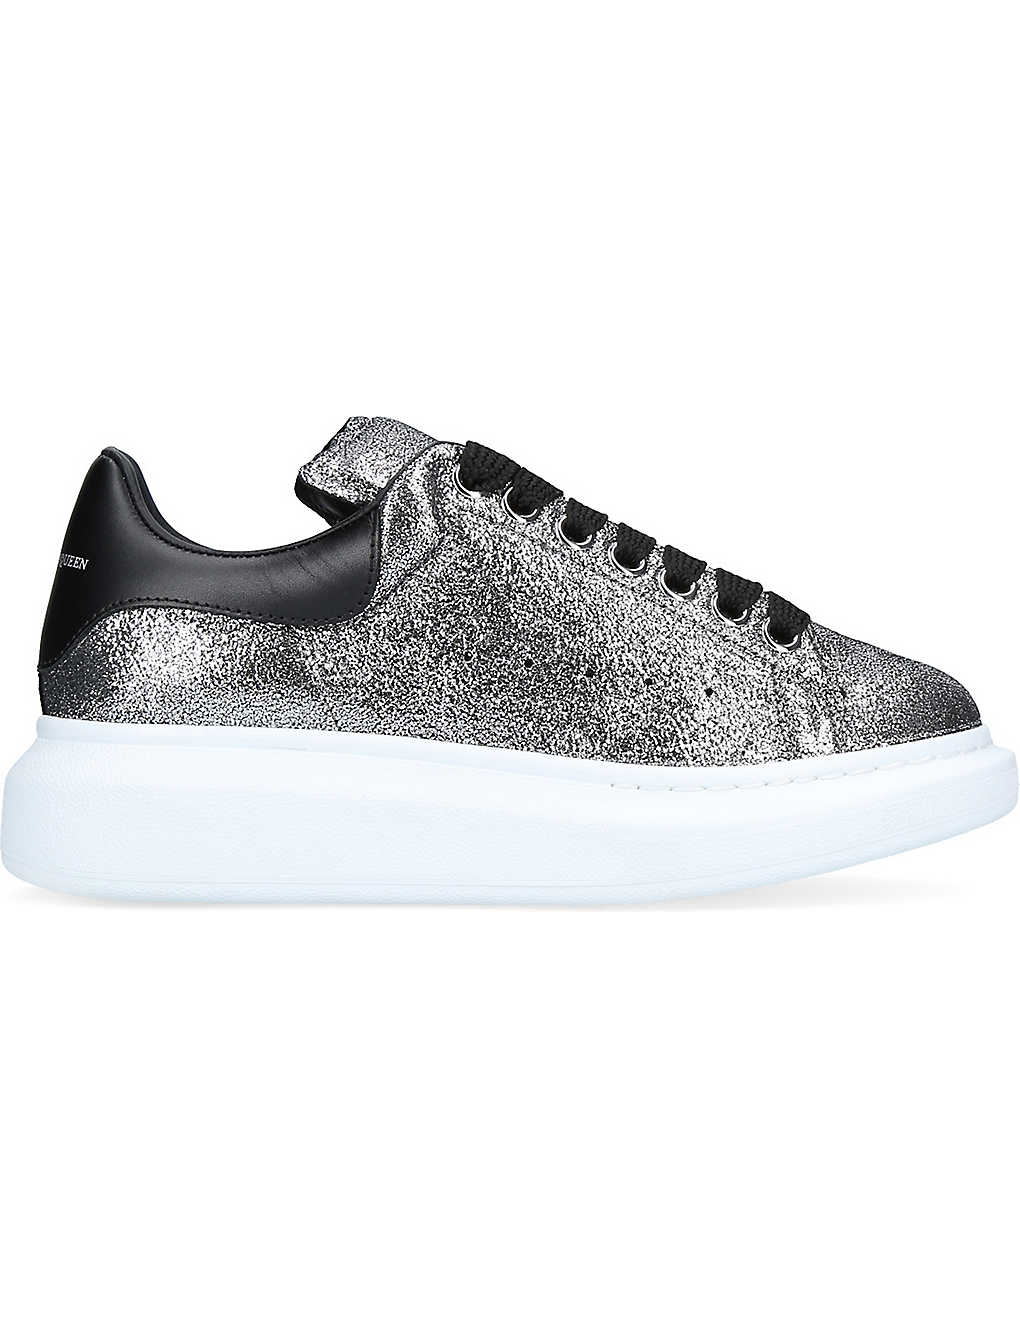 Discount Alexander Mcqueen Silver Com Oversized Goatskin Trainers for Women Online Sale